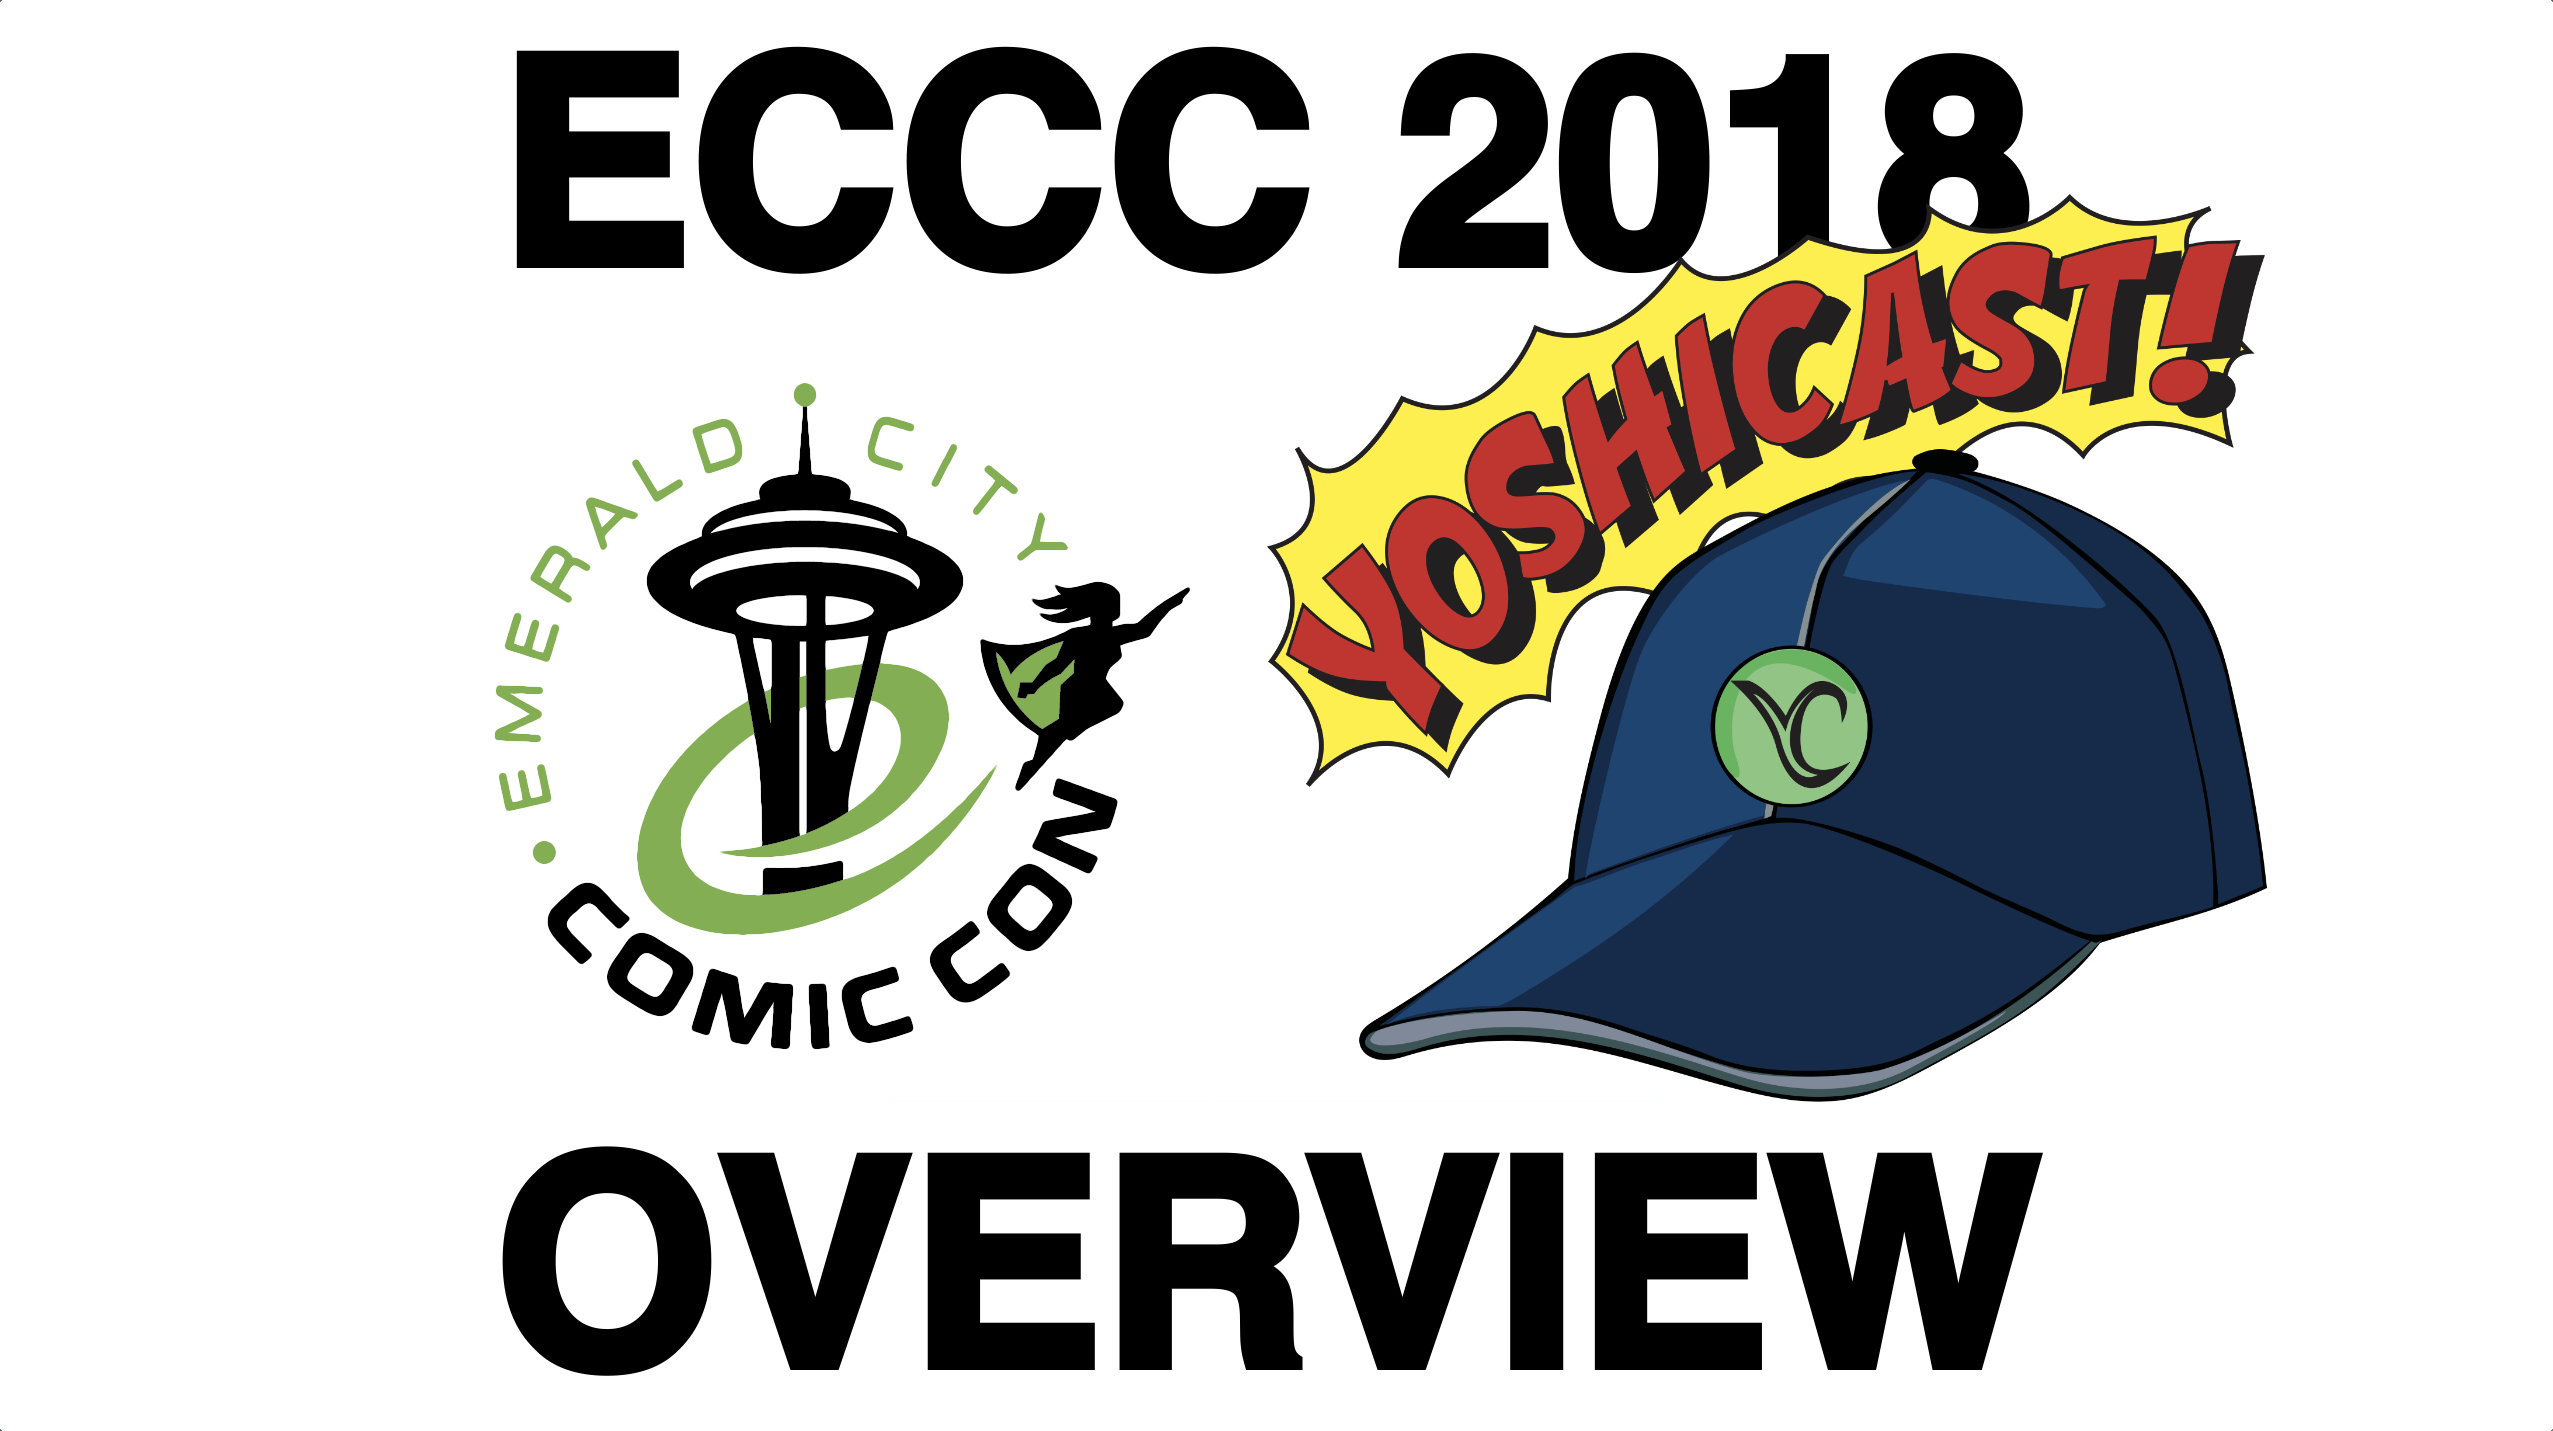 Emerald City Comic Con 2018